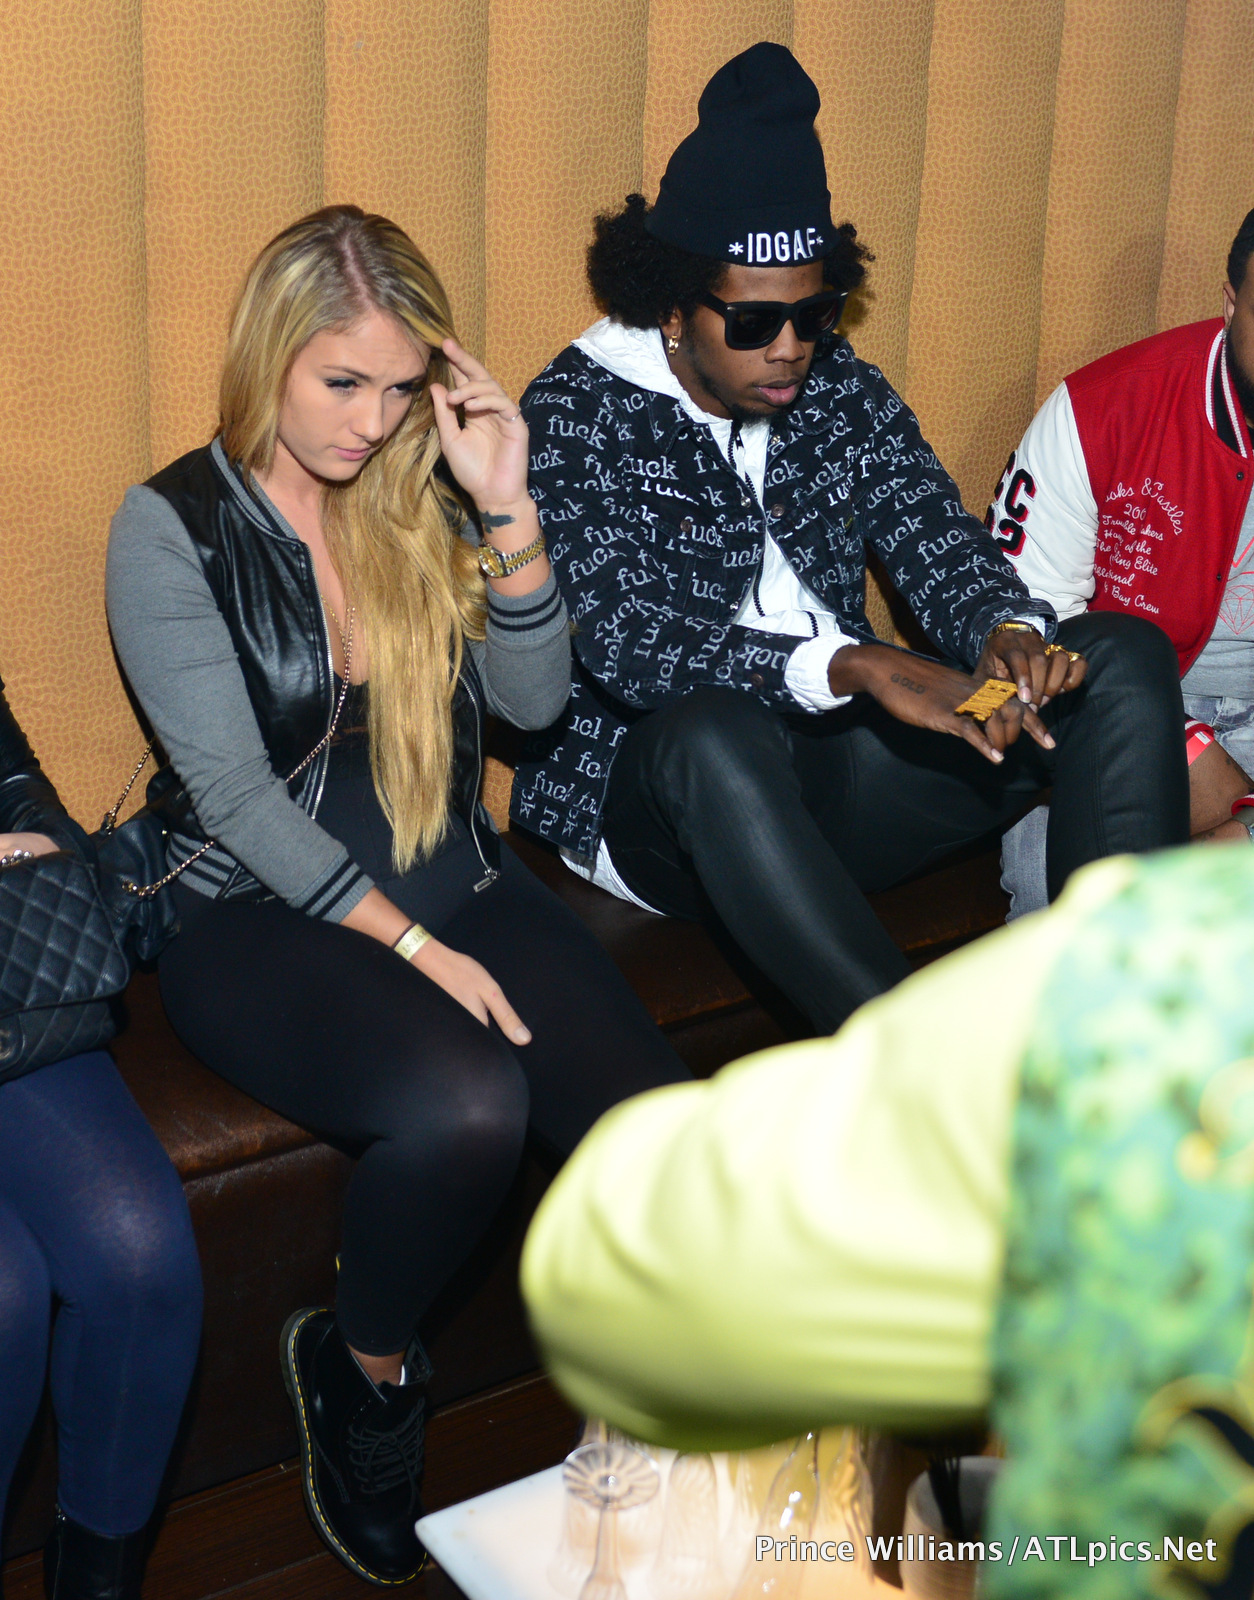 g-trinidad james-atl clubbin-with white girl-the jasmine brand